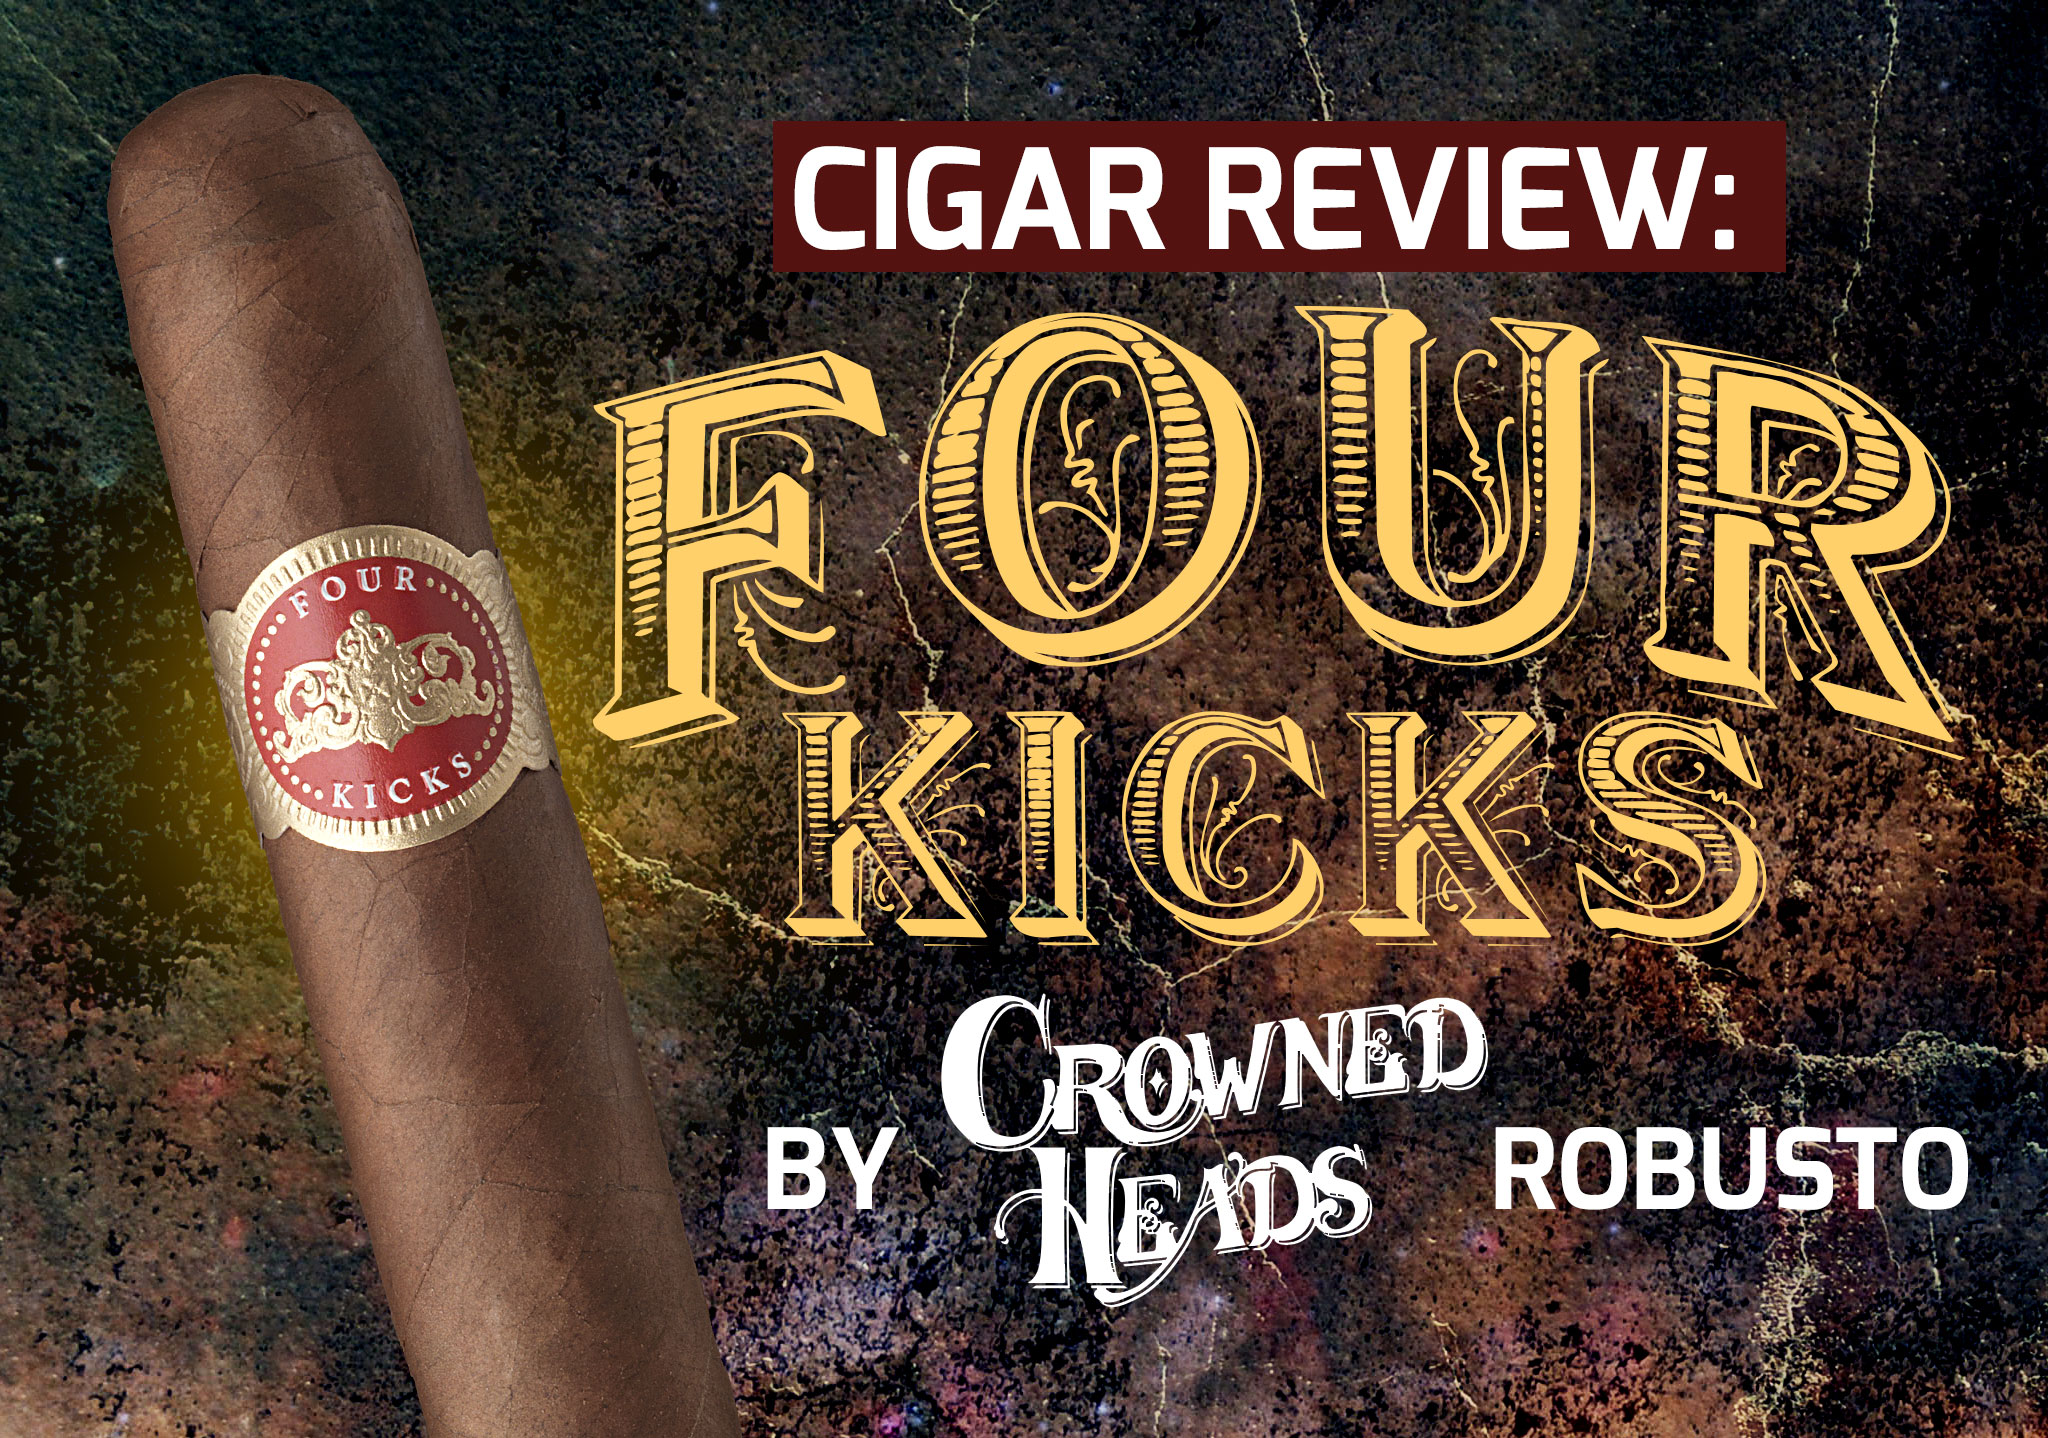 Cigar Review: Four Kicks by Crowned Heads Robusto